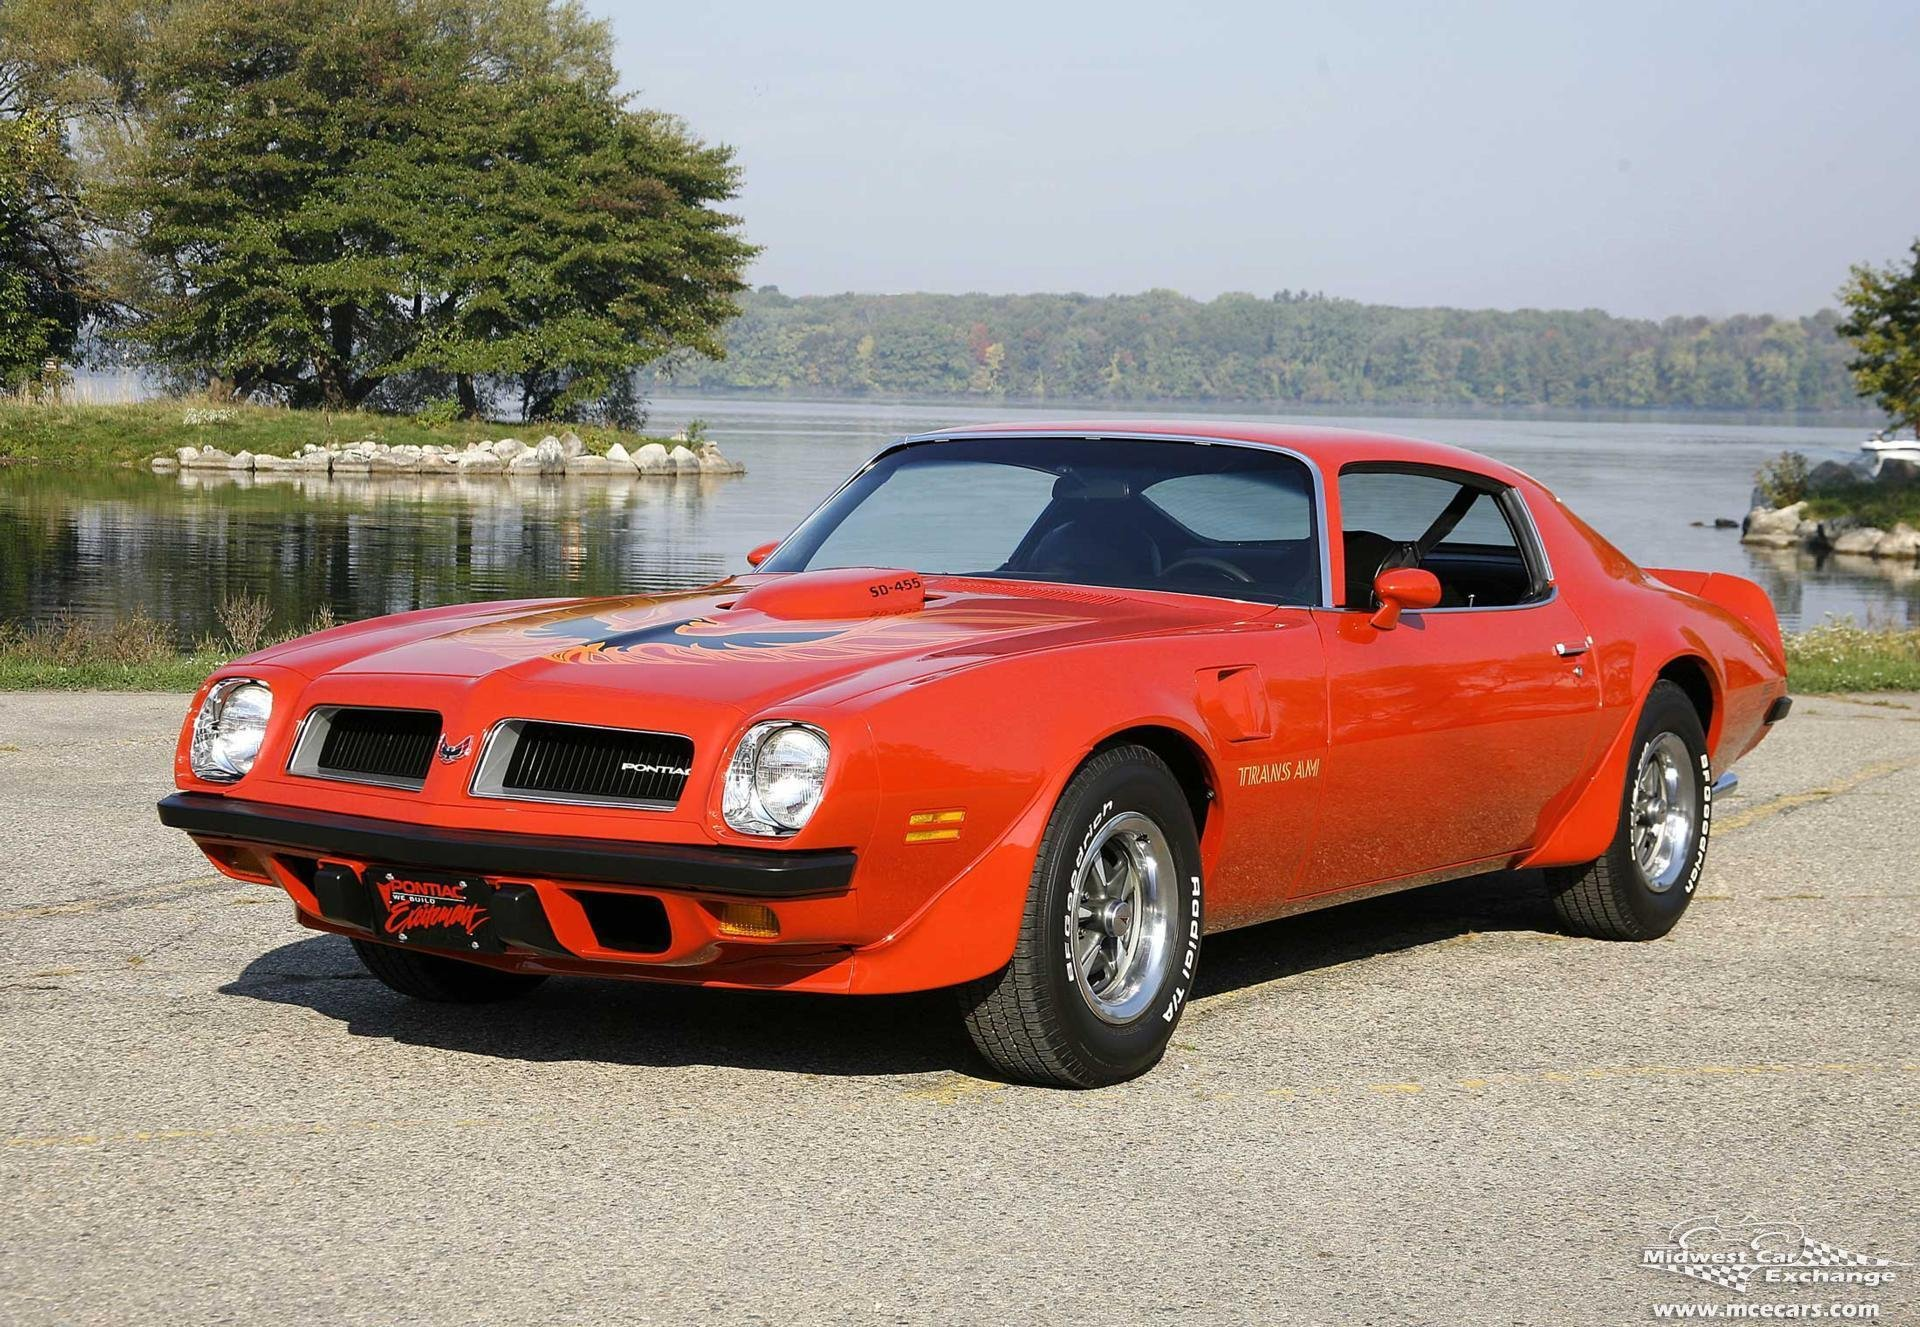 1974 pontiac trans am sd super duty 4 speed